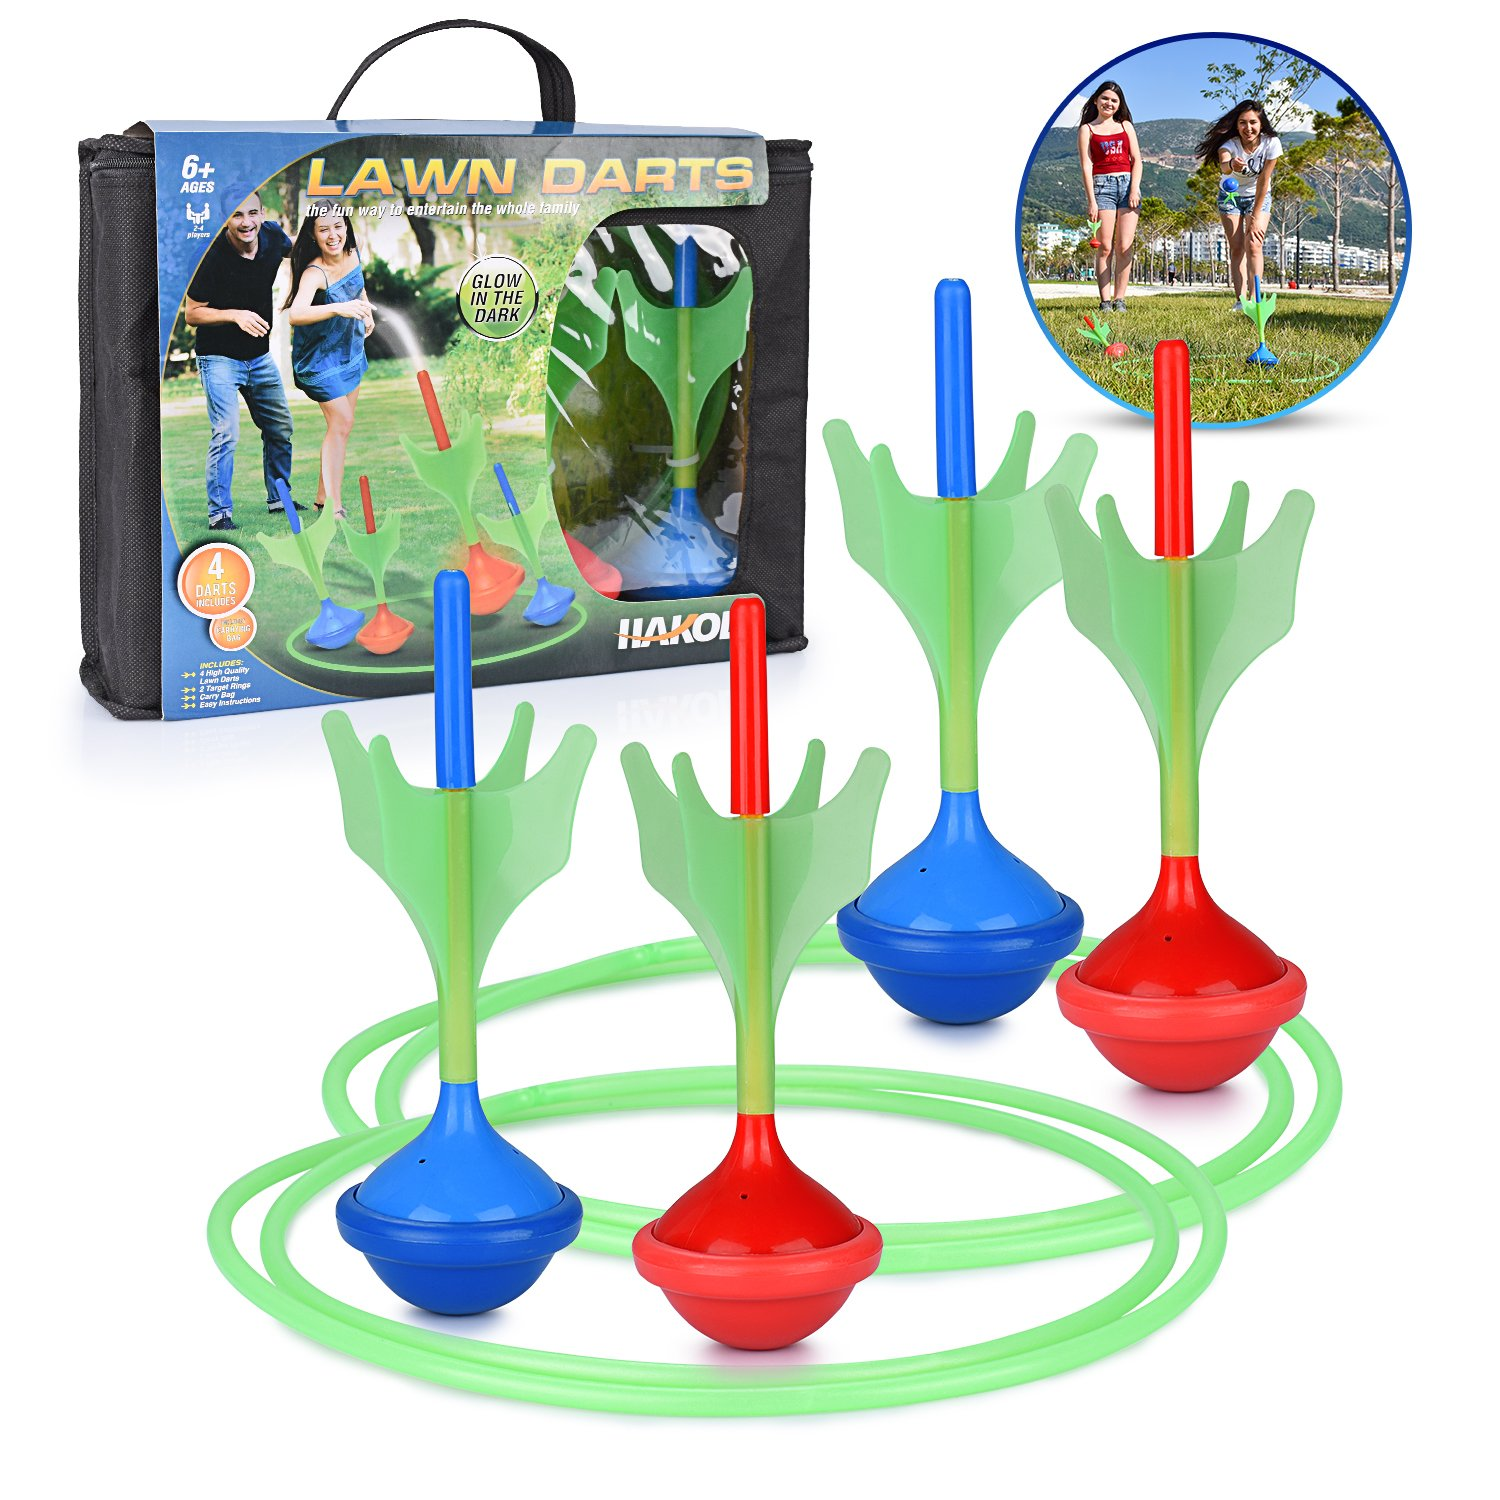 Lawn Darts Game - Glow in The Dark, Outdoor Backyard Toy for Kids & Adults   Fun for The Entire Family   Work On Your Aim & Accuracy While Having A Blast